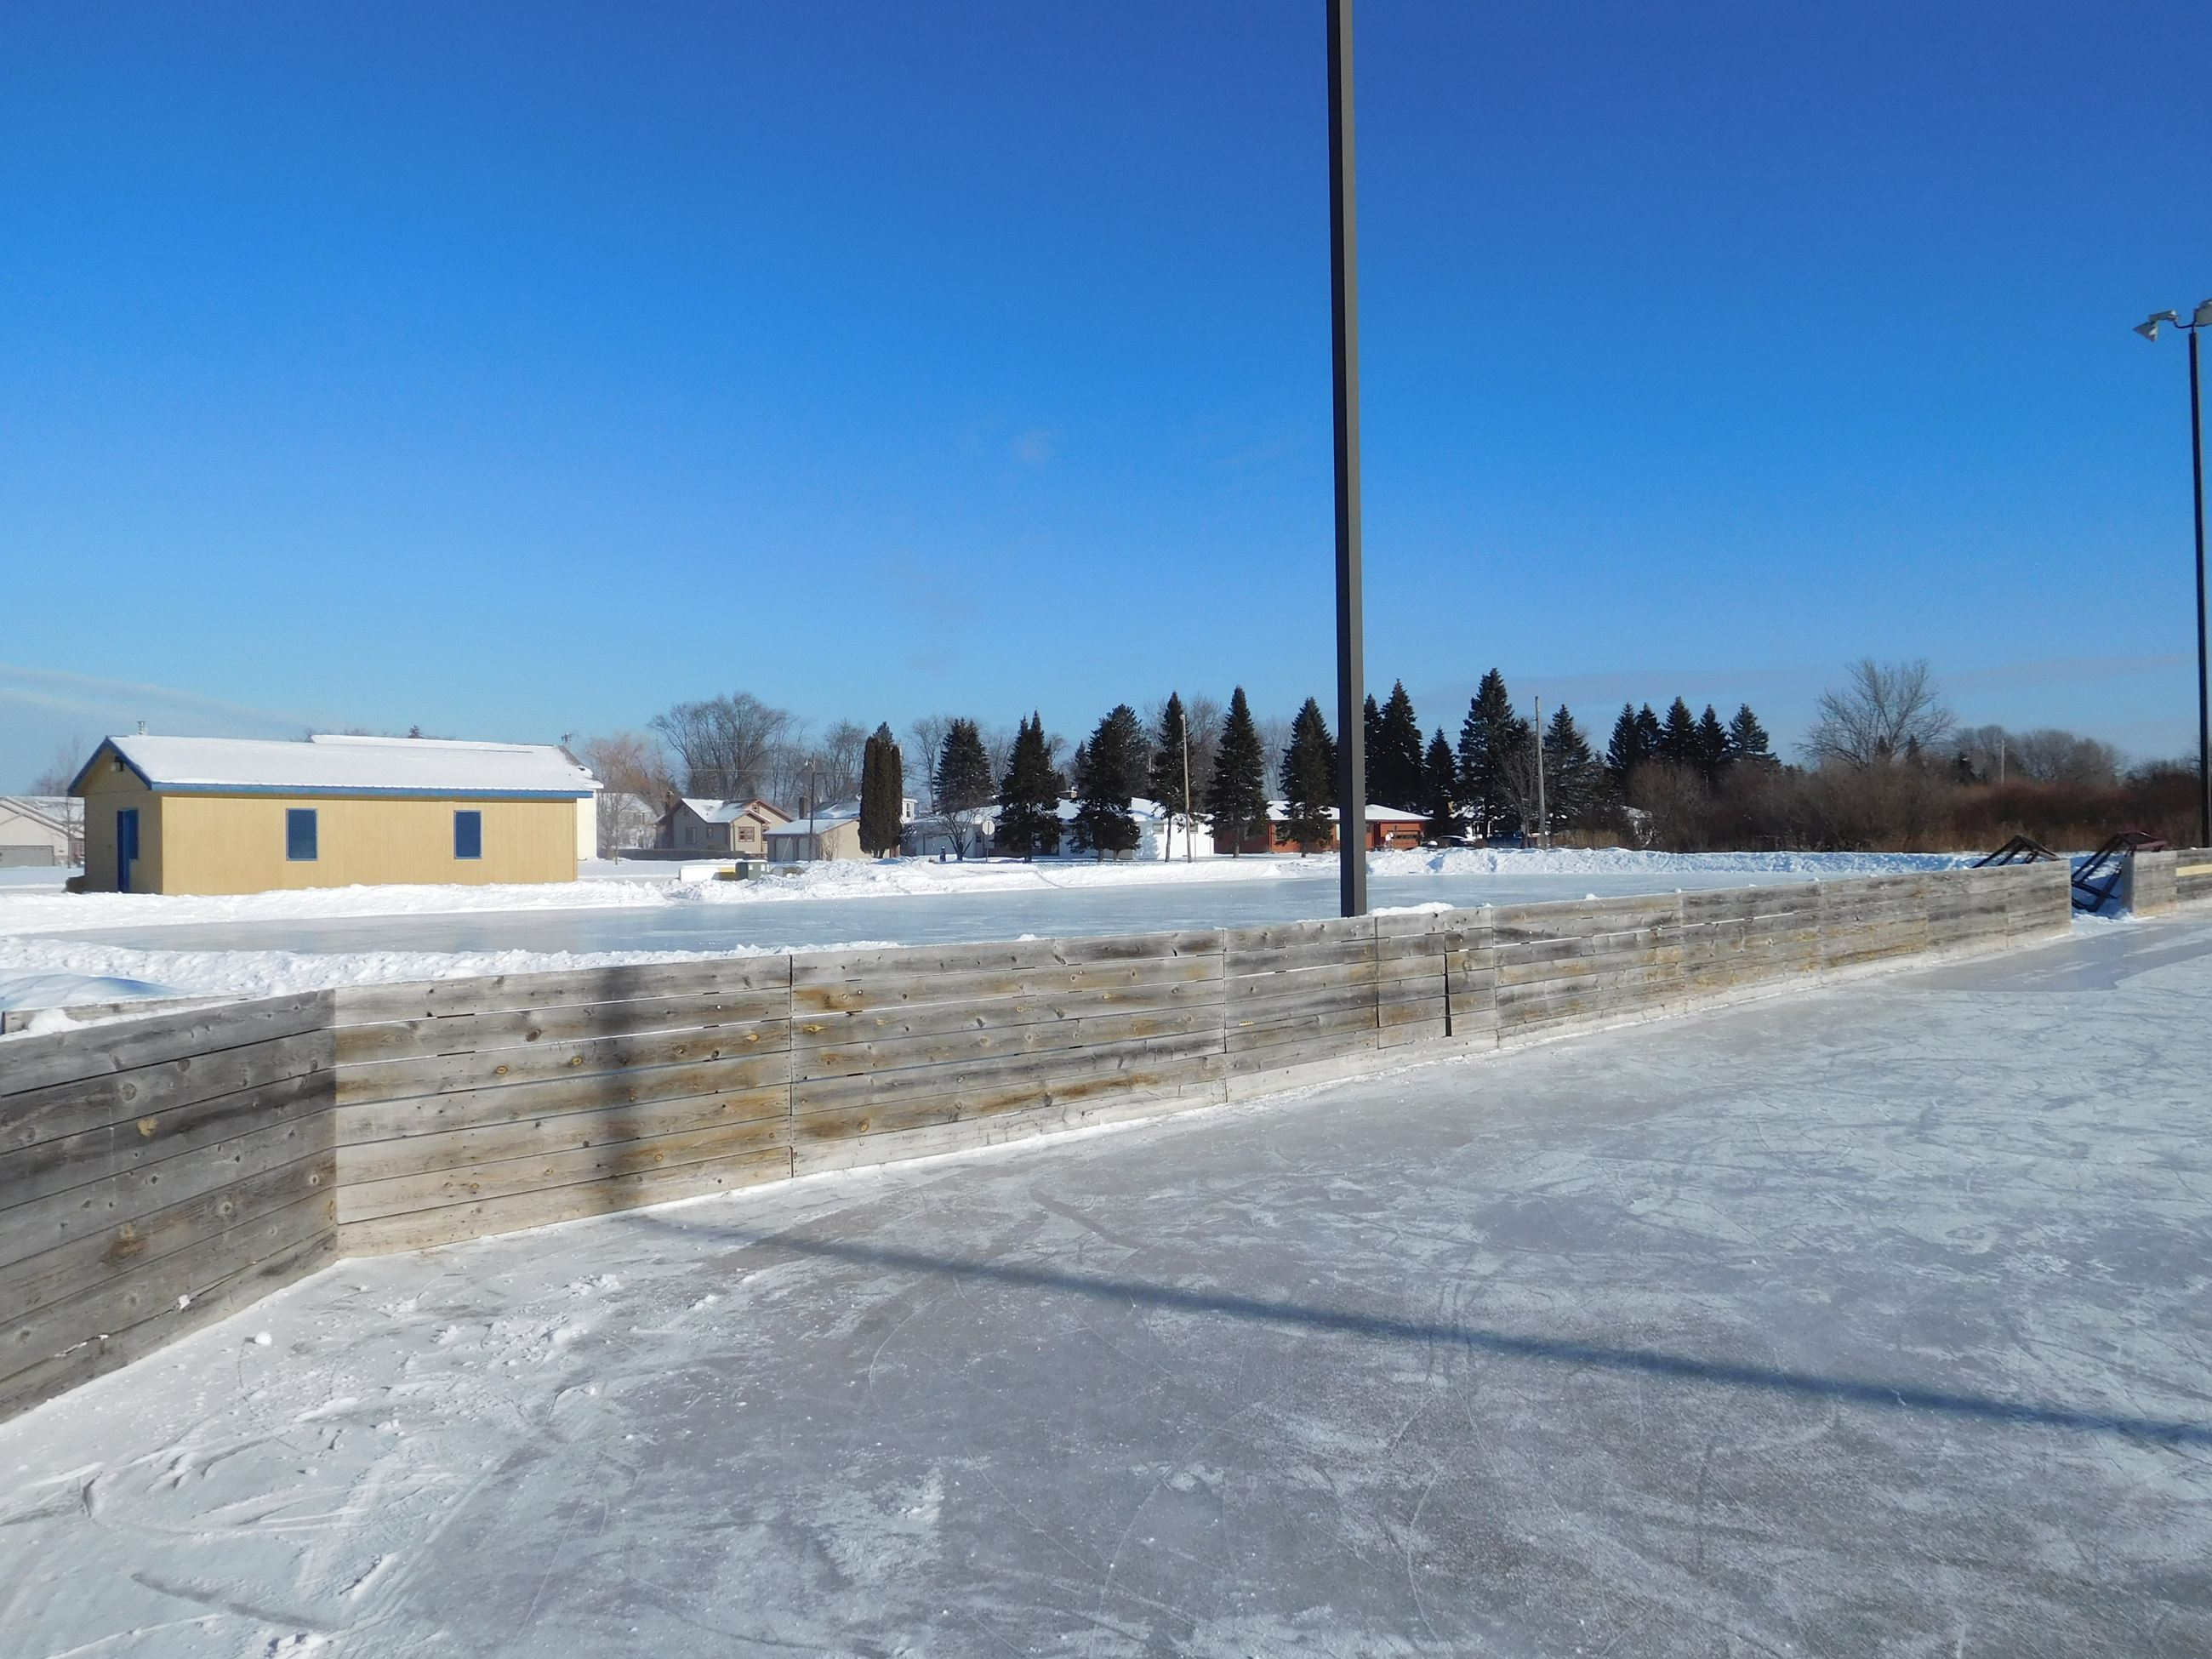 Pattison Ice Rink